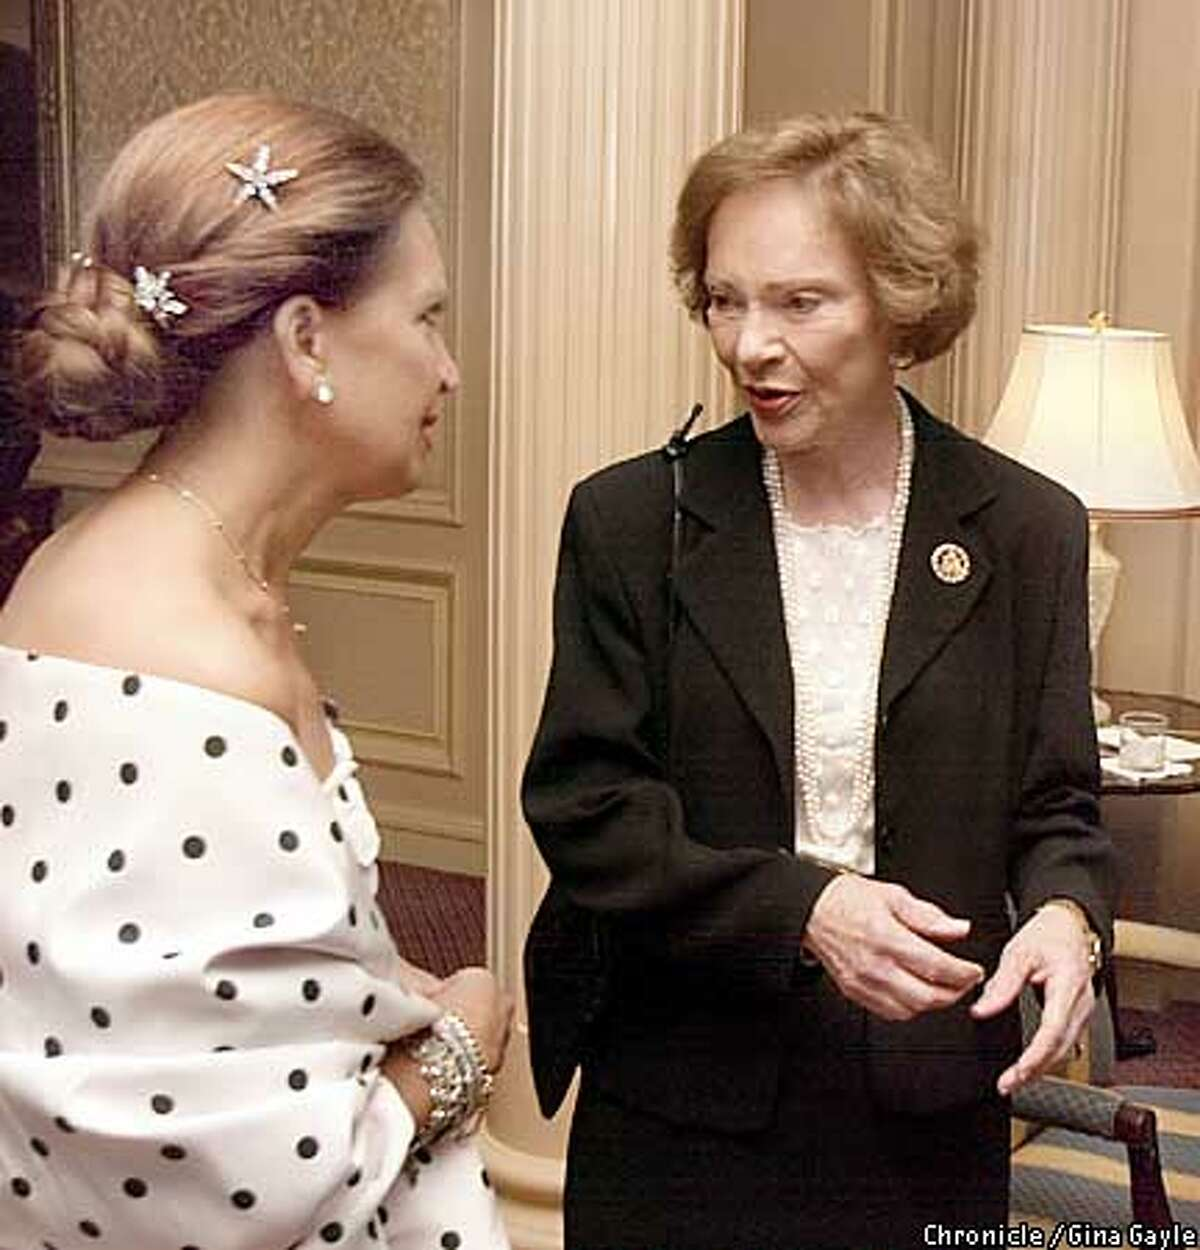 Author Danielle Steel greets former First Lady Rosalind Carter (spelling) at The Star Ball benefiting The Nick Traina Foundation at the Ritz Carlton. Photo by Gina Gayle/The SF Chronicle.